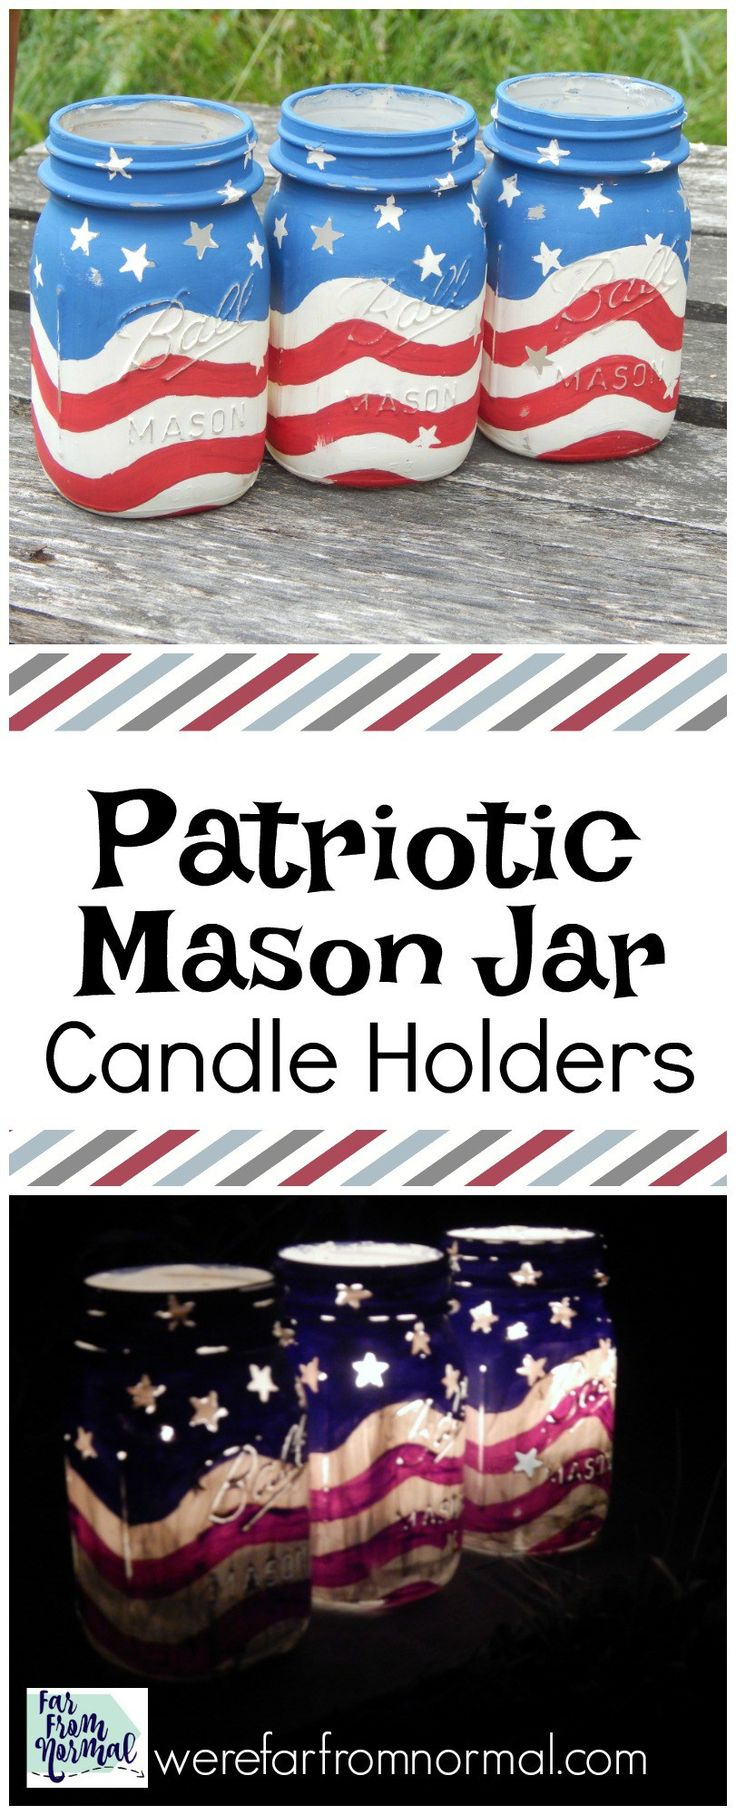 Patriotic Mason Jar Candle Holders  #4thofJuly #MasonJar